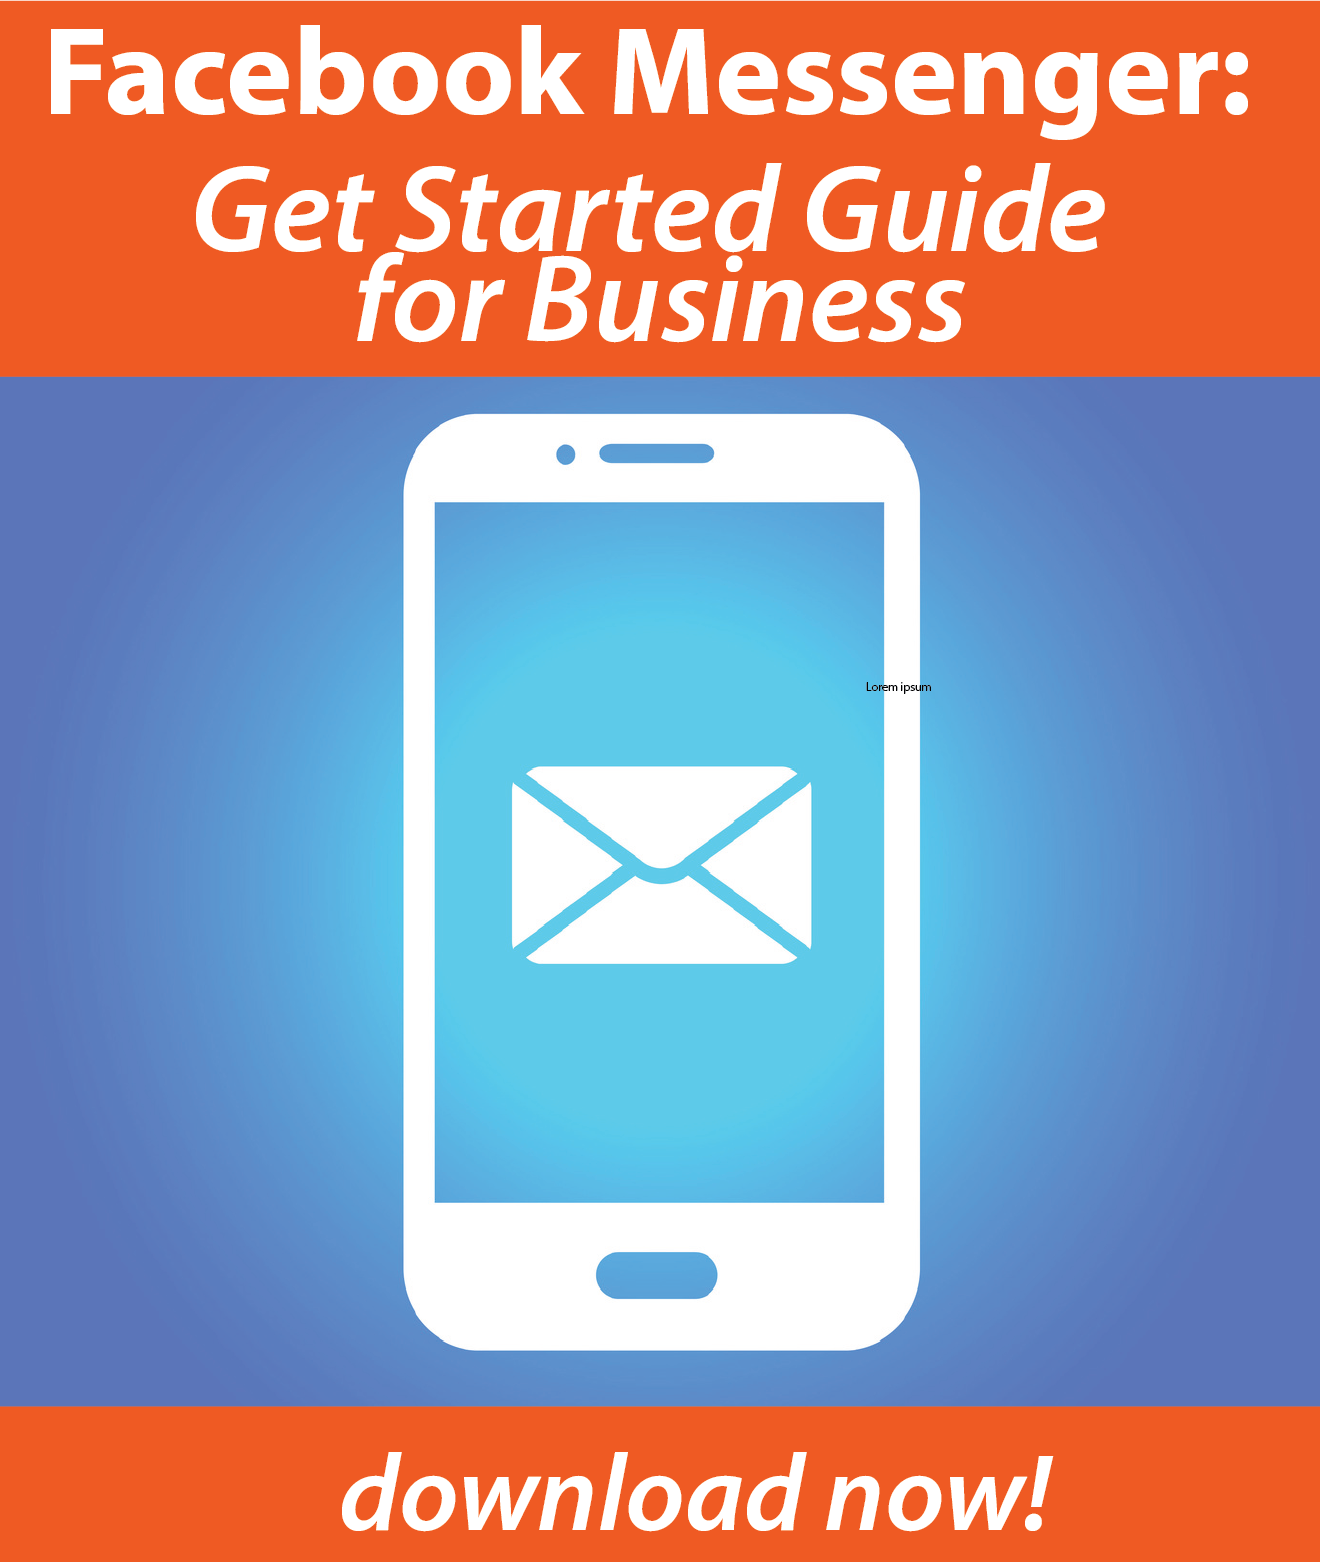 Download Now! Facebook Messenger 101: Get Started Guide for Business